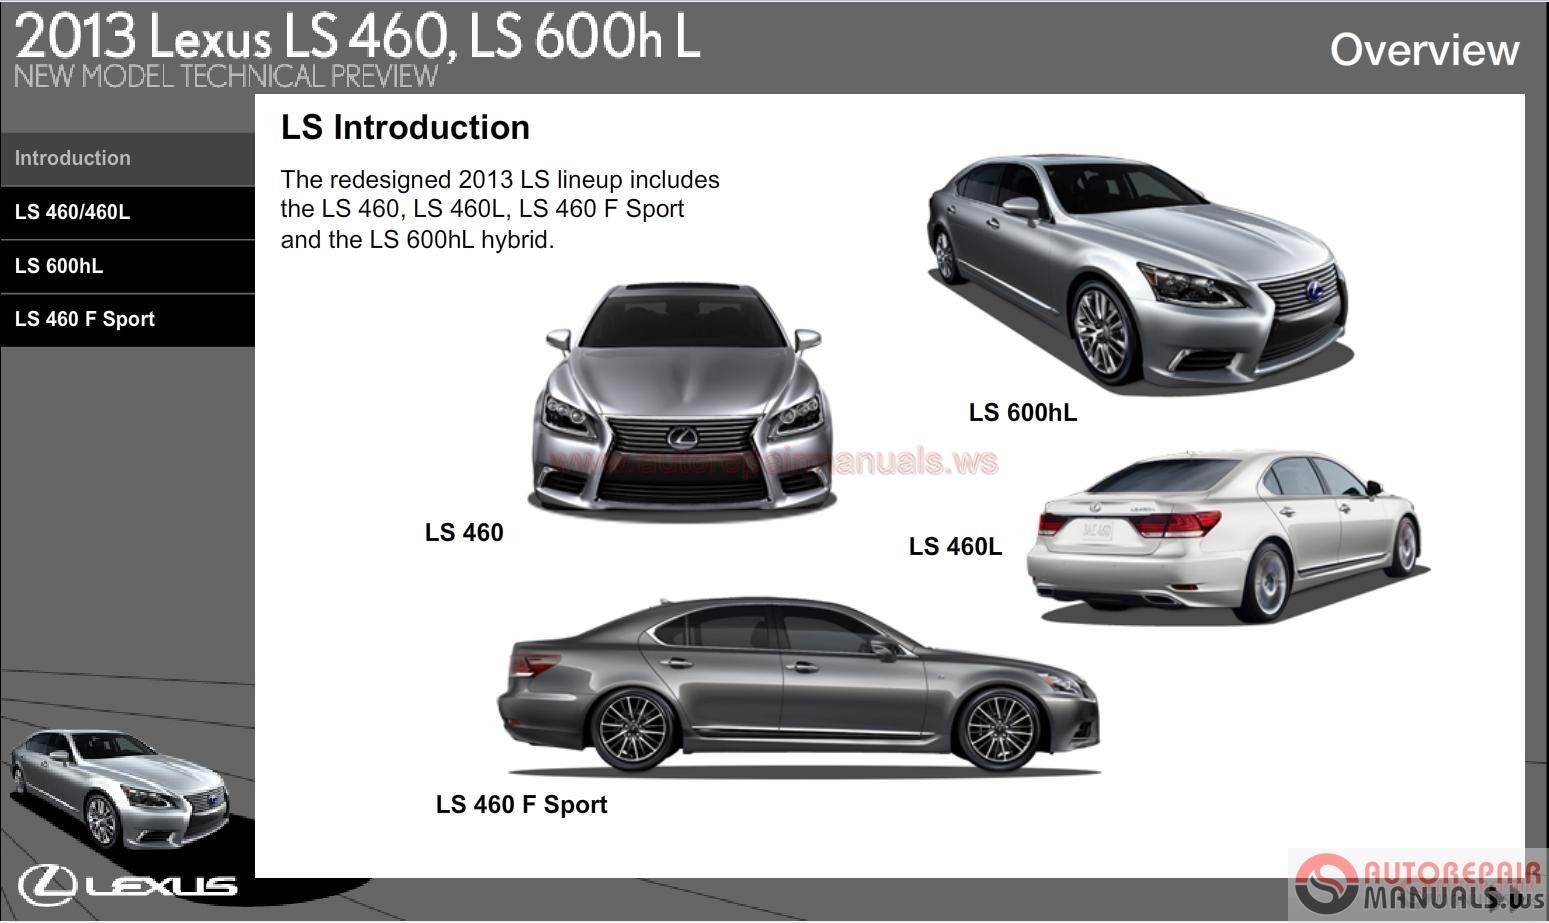 lexus ls460  ls460hl 2013 new model technical preview